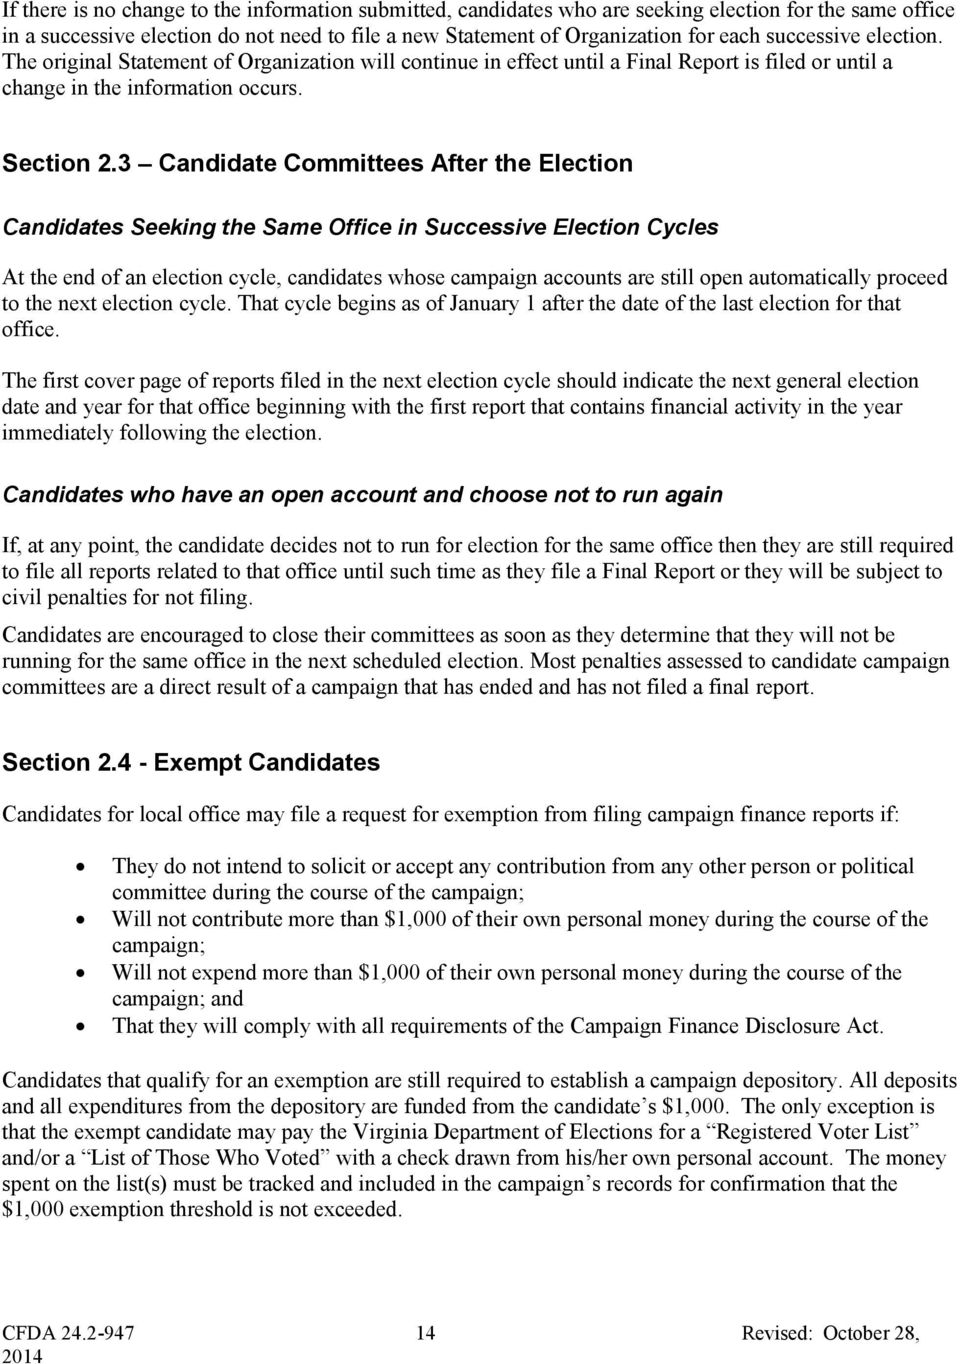 3 Candidate Committees After the Election Candidates Seeking the Same Office in Successive Election Cycles At the end of an election cycle, candidates whose campaign accounts are still open